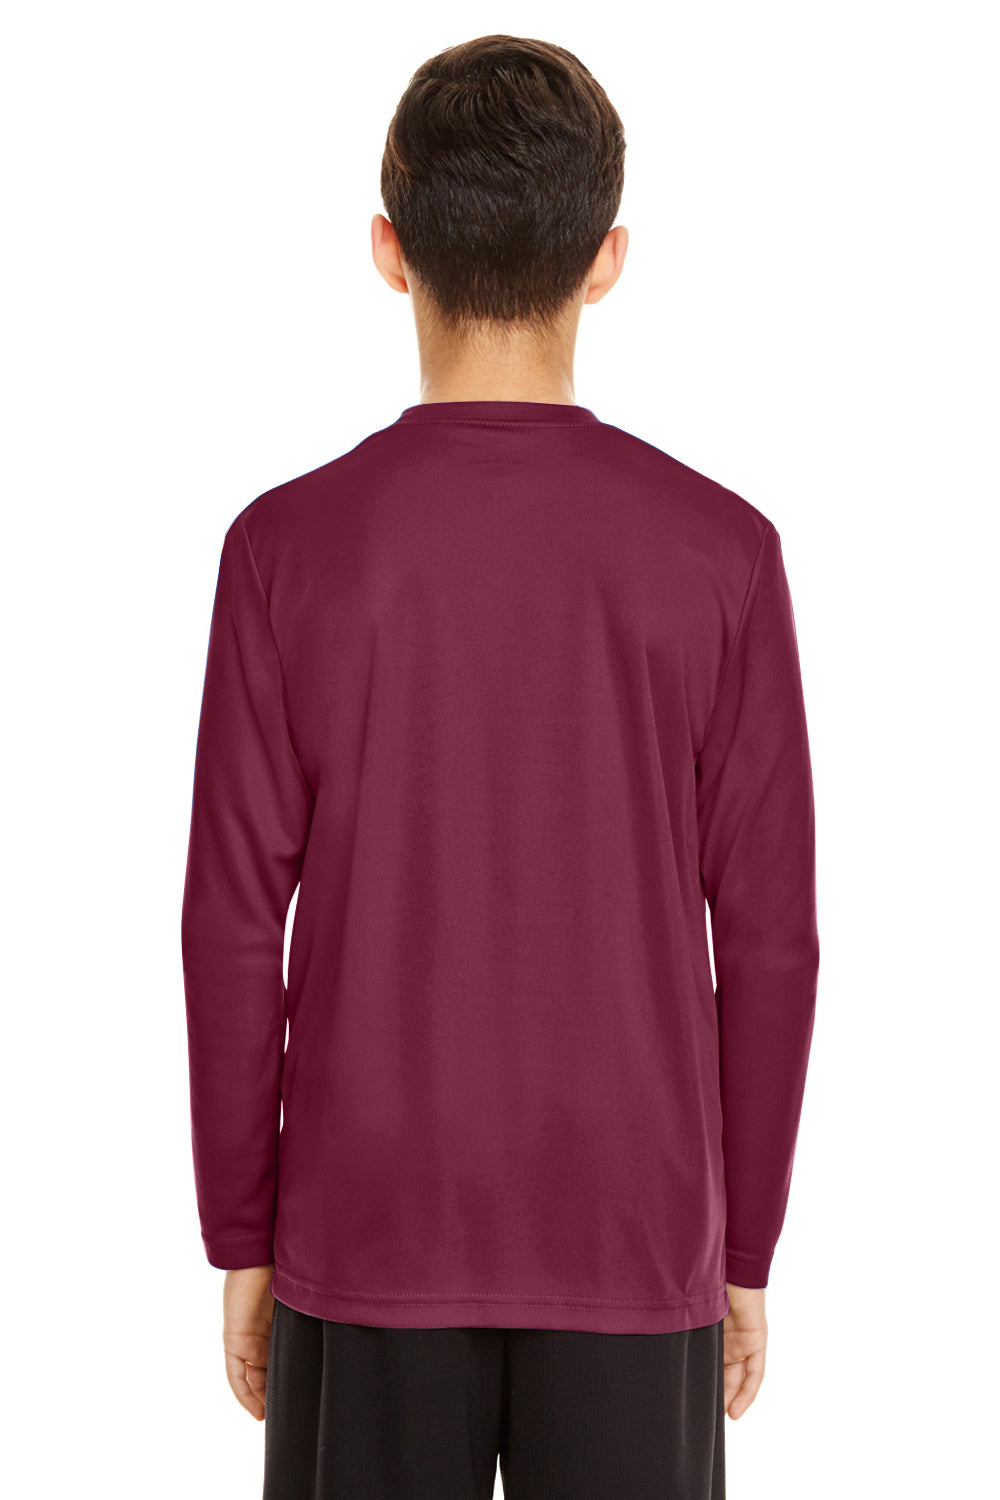 Team 365 TT11YL Zone Performance Moisture Wicking Long Sleeve Crewneck T-Shirt Maroon Back